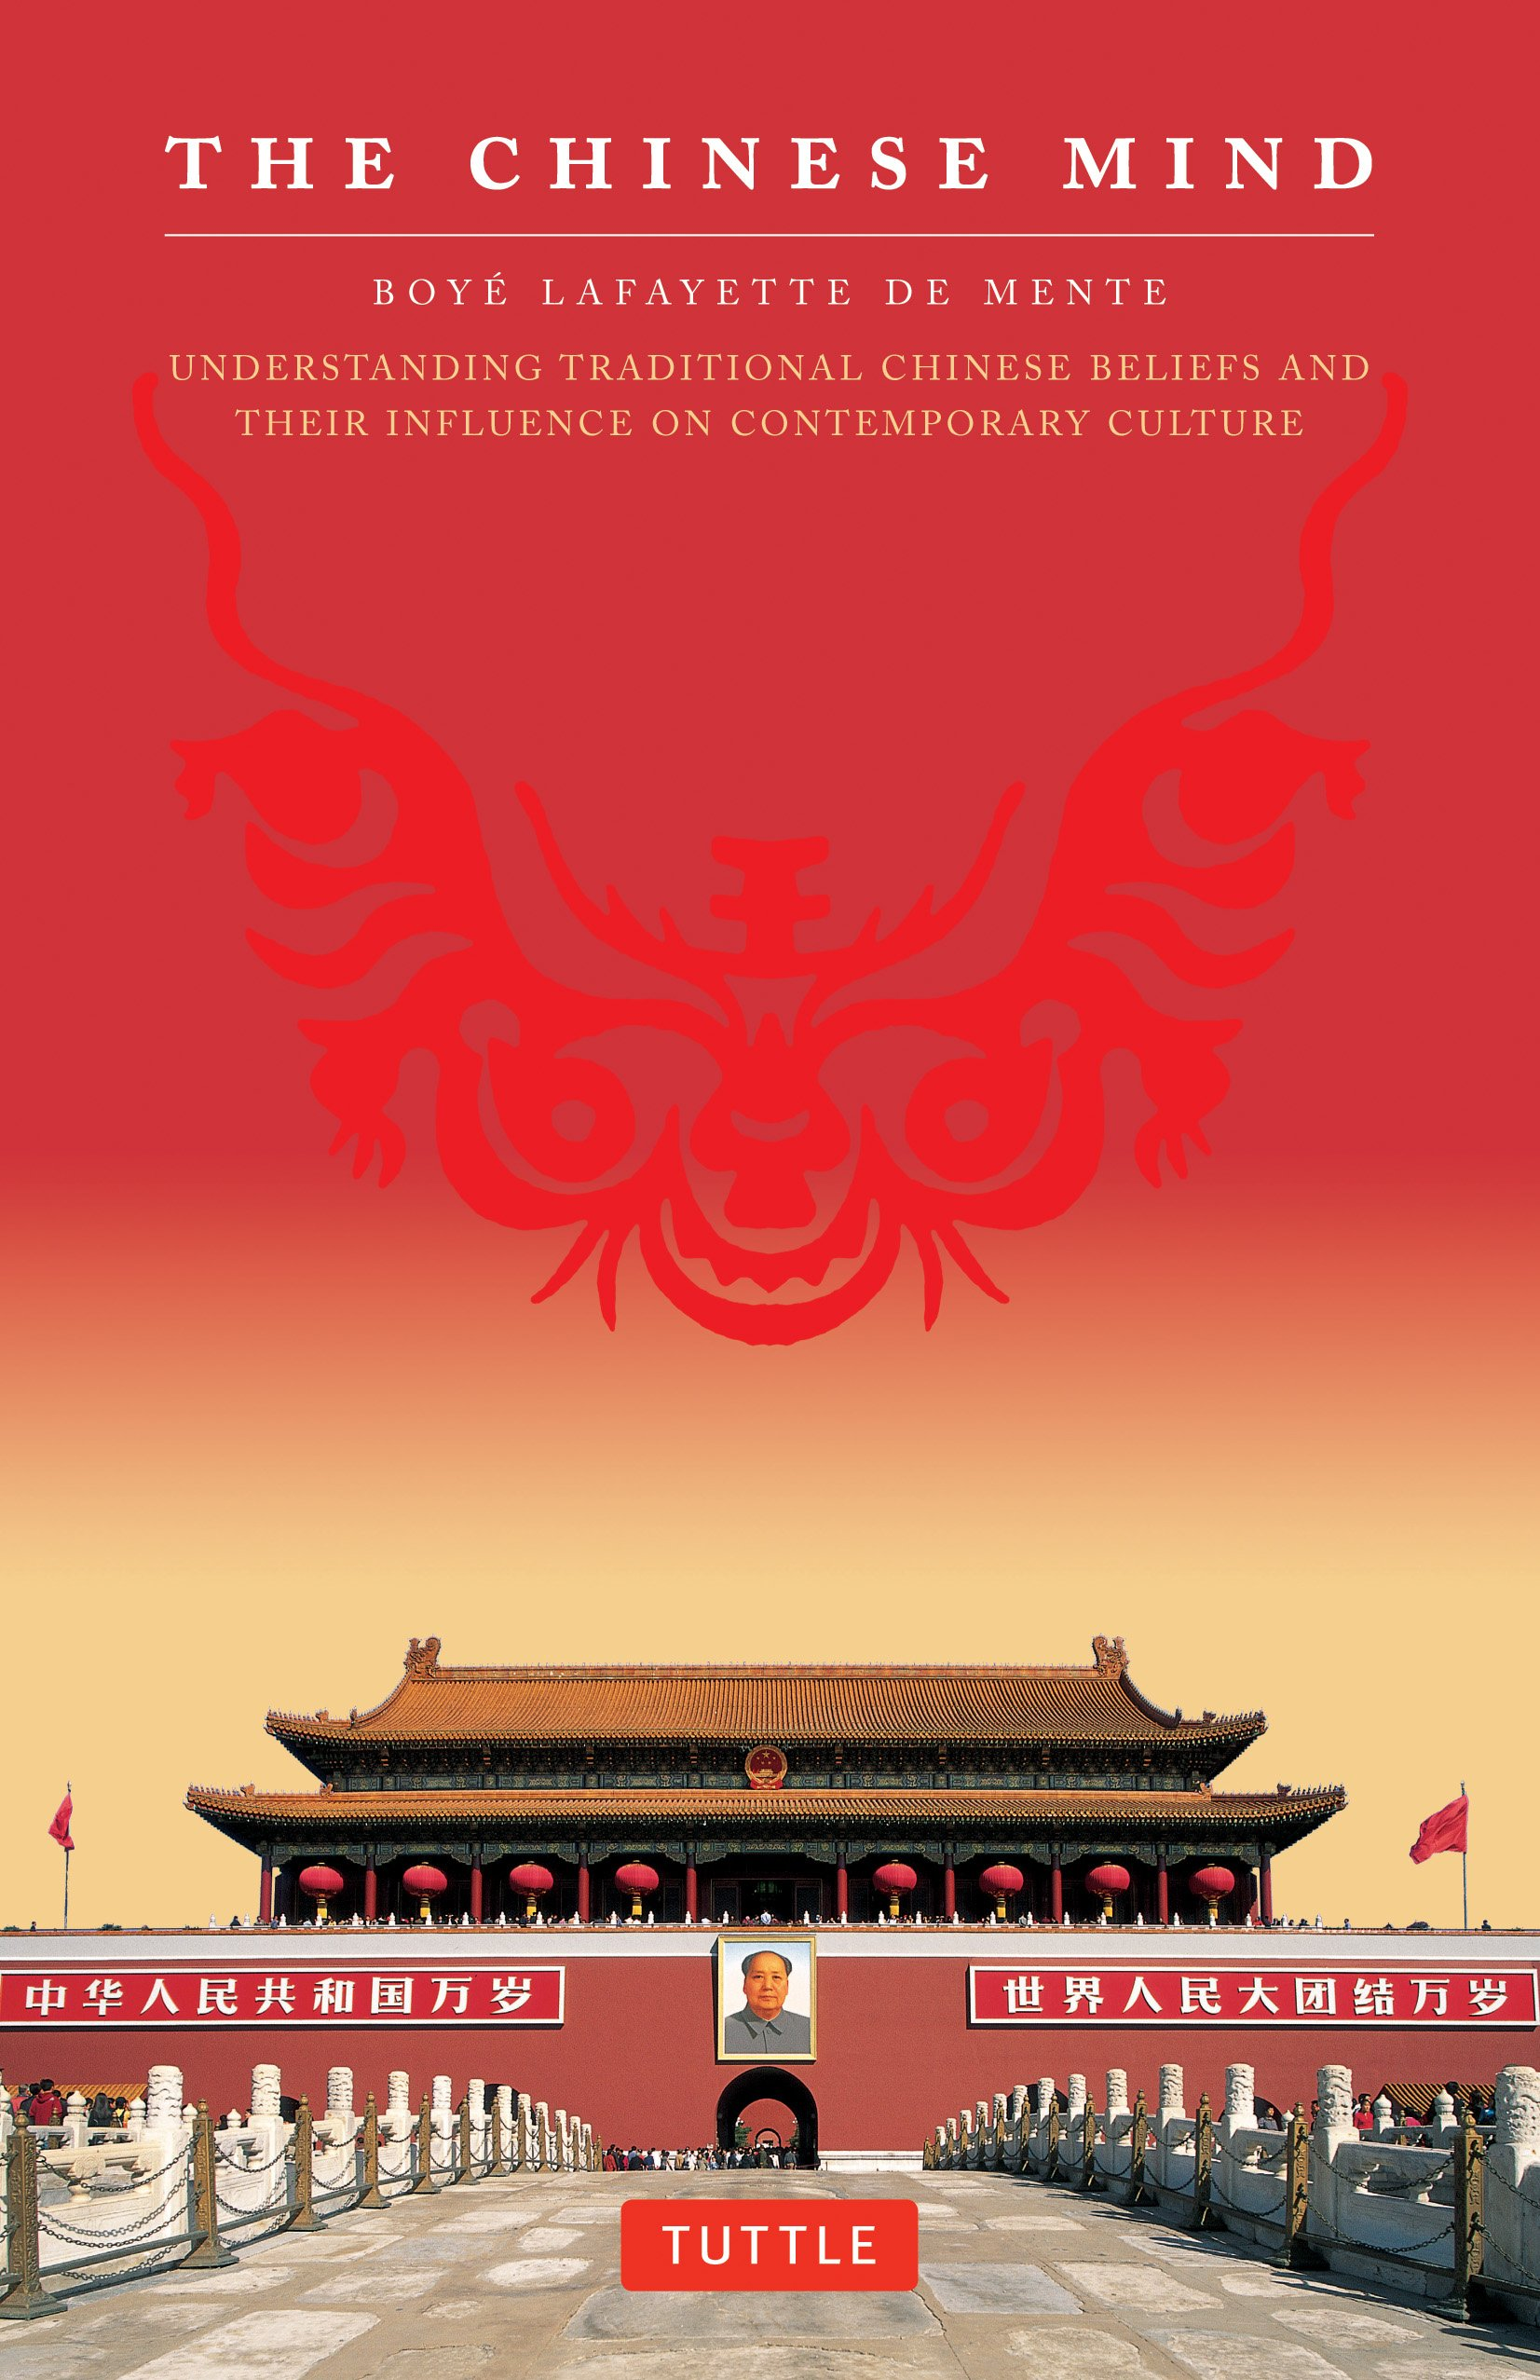 The Chinese Mind: Understanding Traditional Chinese Beliefs and Their Influence on Contemporary Culture by De Mente, Boye